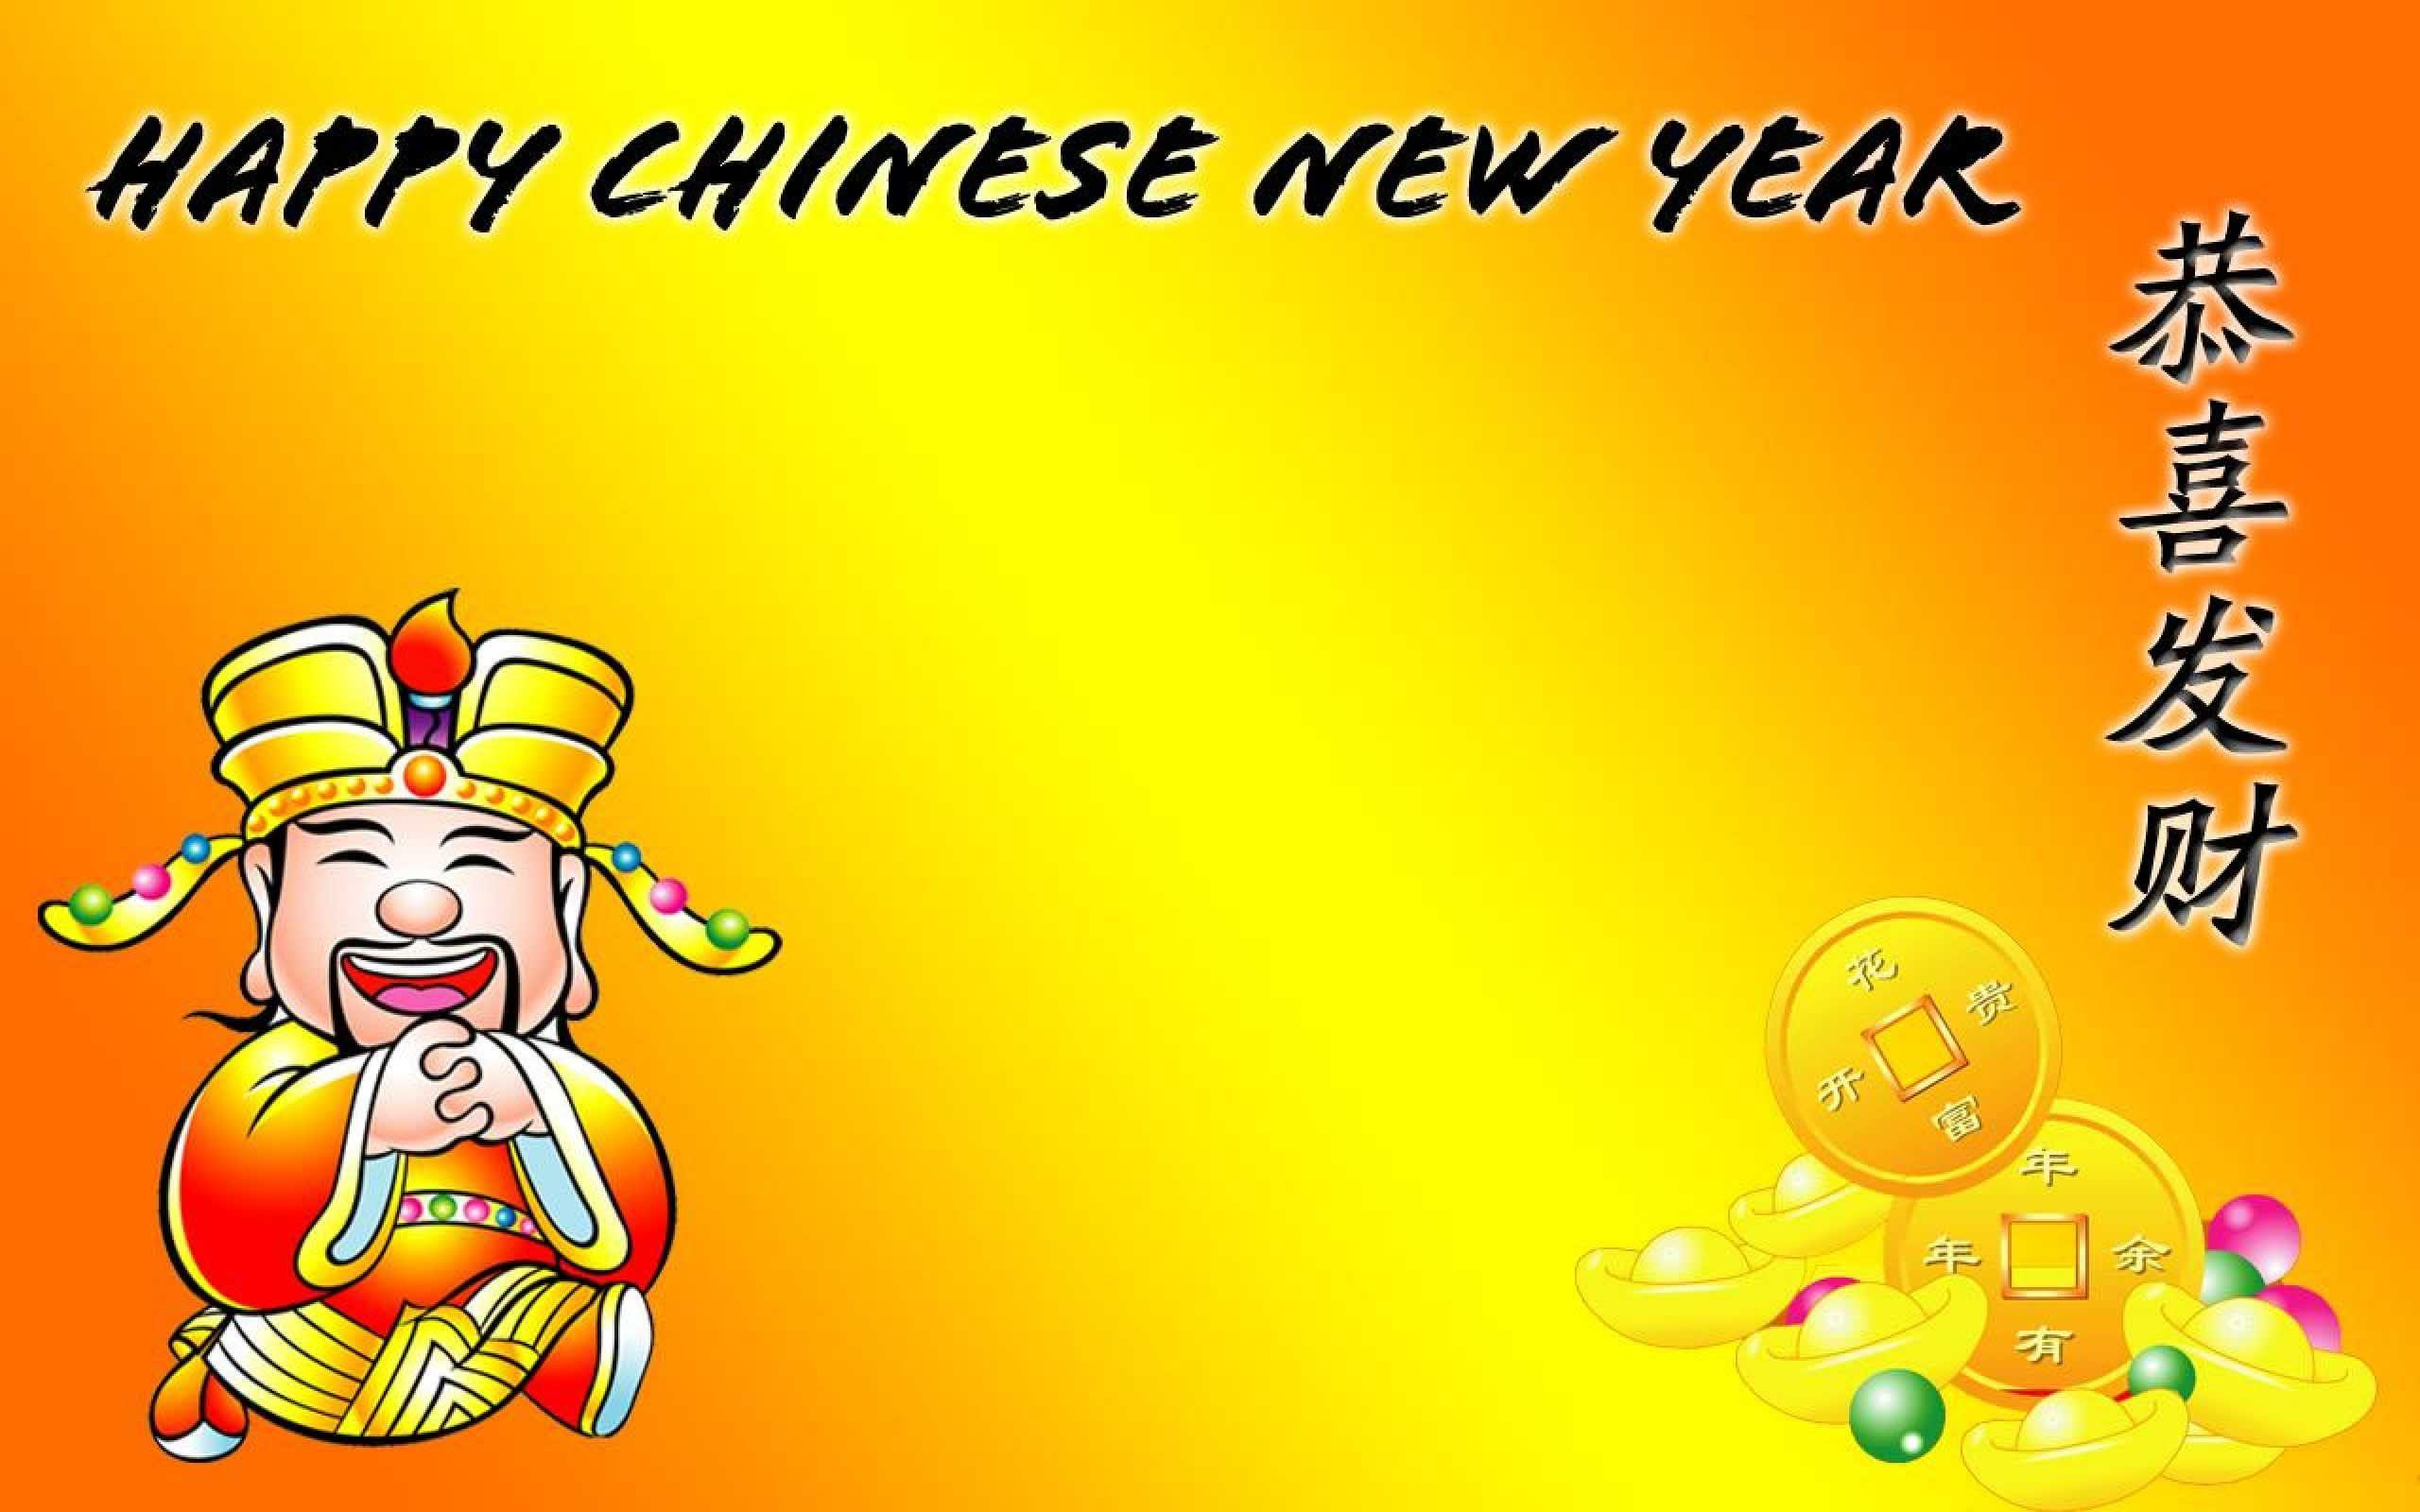 Chinese New Year Wallpaper 2017 Free Download #4090 Wallpaper ...